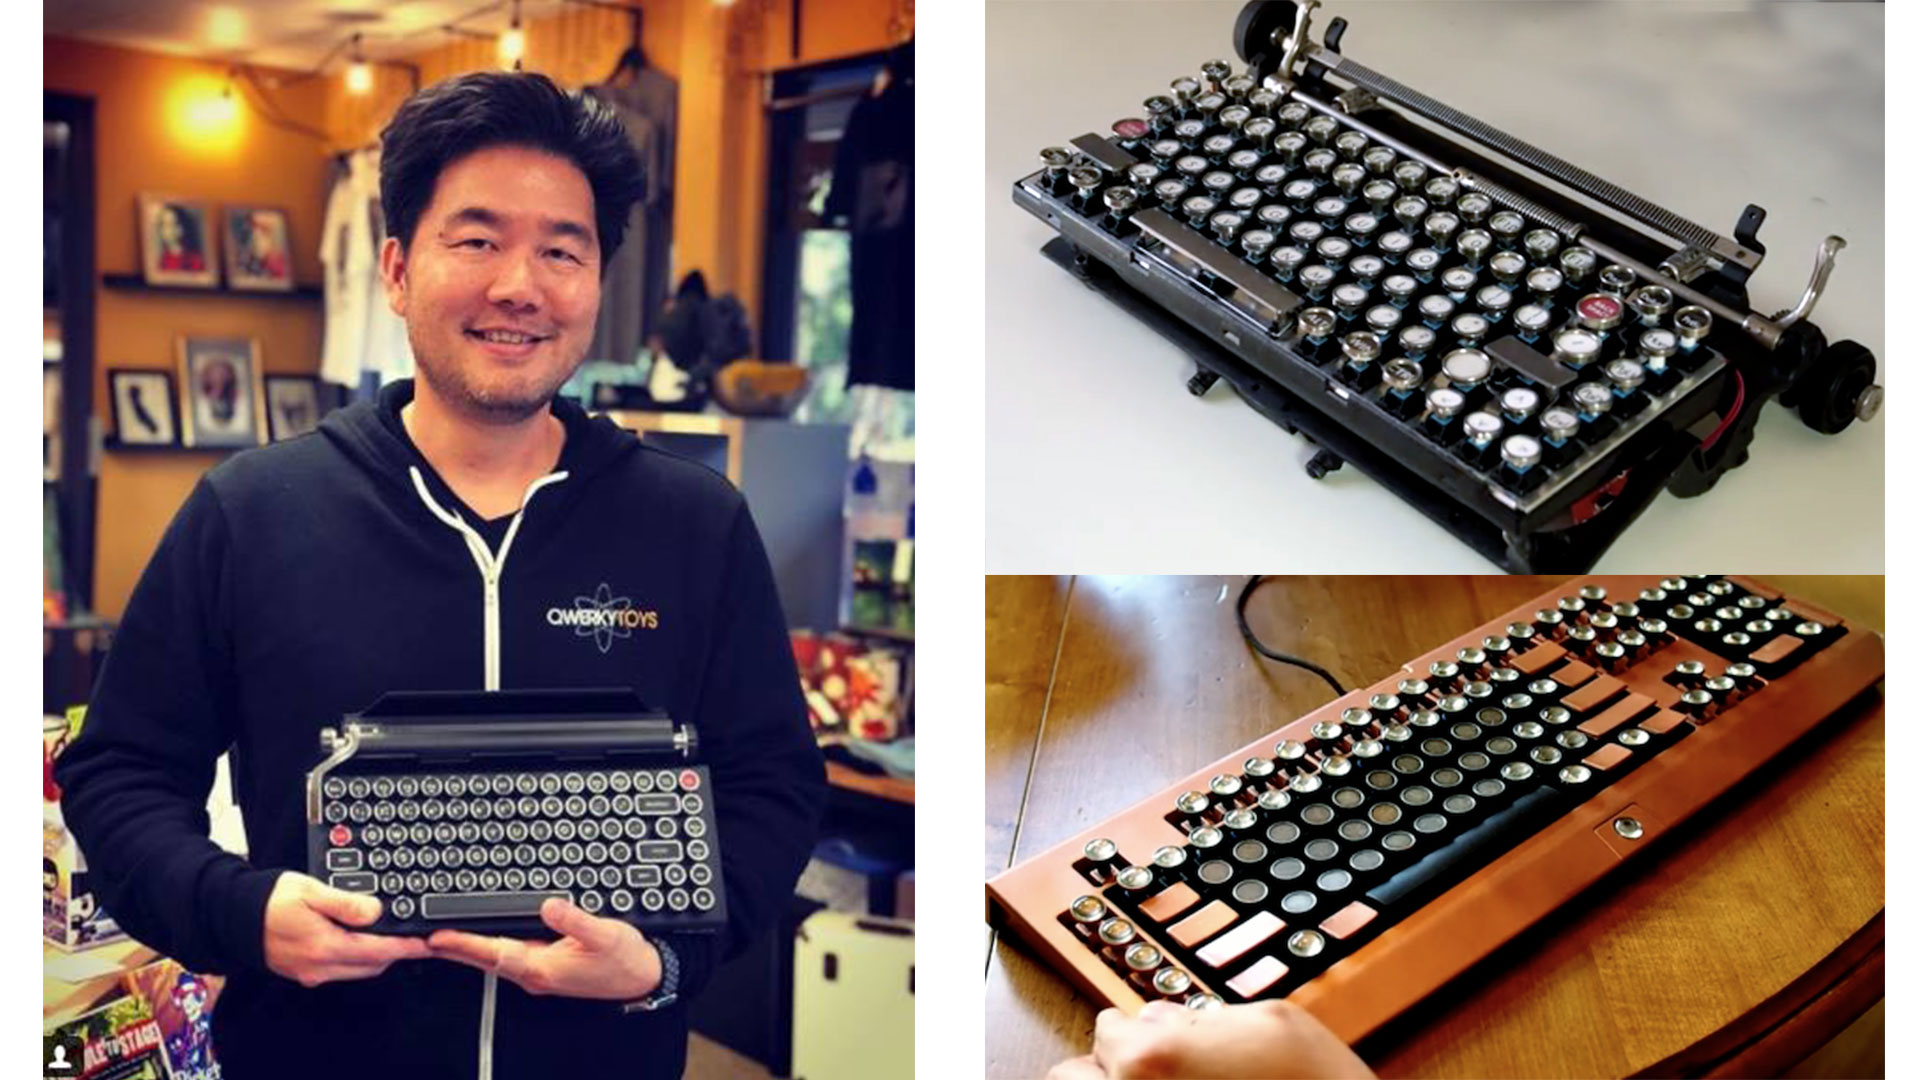 Brian Min and the Qwerkywriter prototype